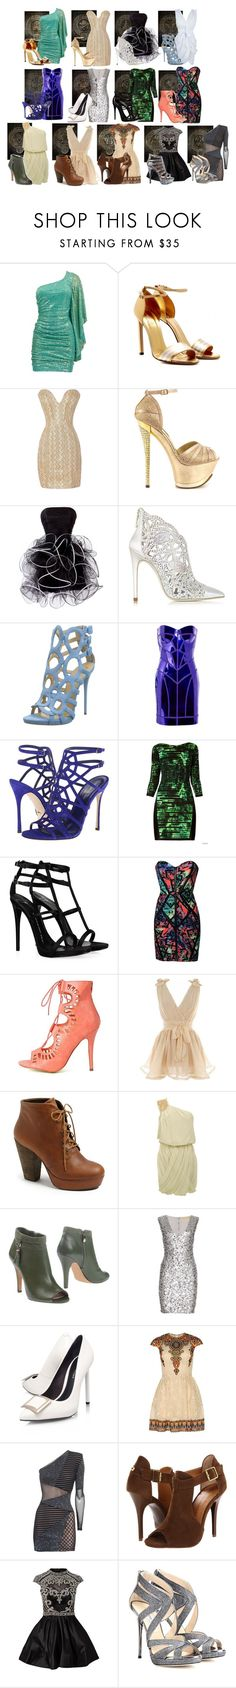 """""""Hunger Games Interview Outfits (plus District 13)"""" by rae-and-morris ❤ liked on Polyvore featuring Gucci, 2 Lips Too, Loriblu, Giuseppe Zanotti, Versace, Sergio Rossi, Lipsy, Steve Madden, TIBI and Vince Camuto"""